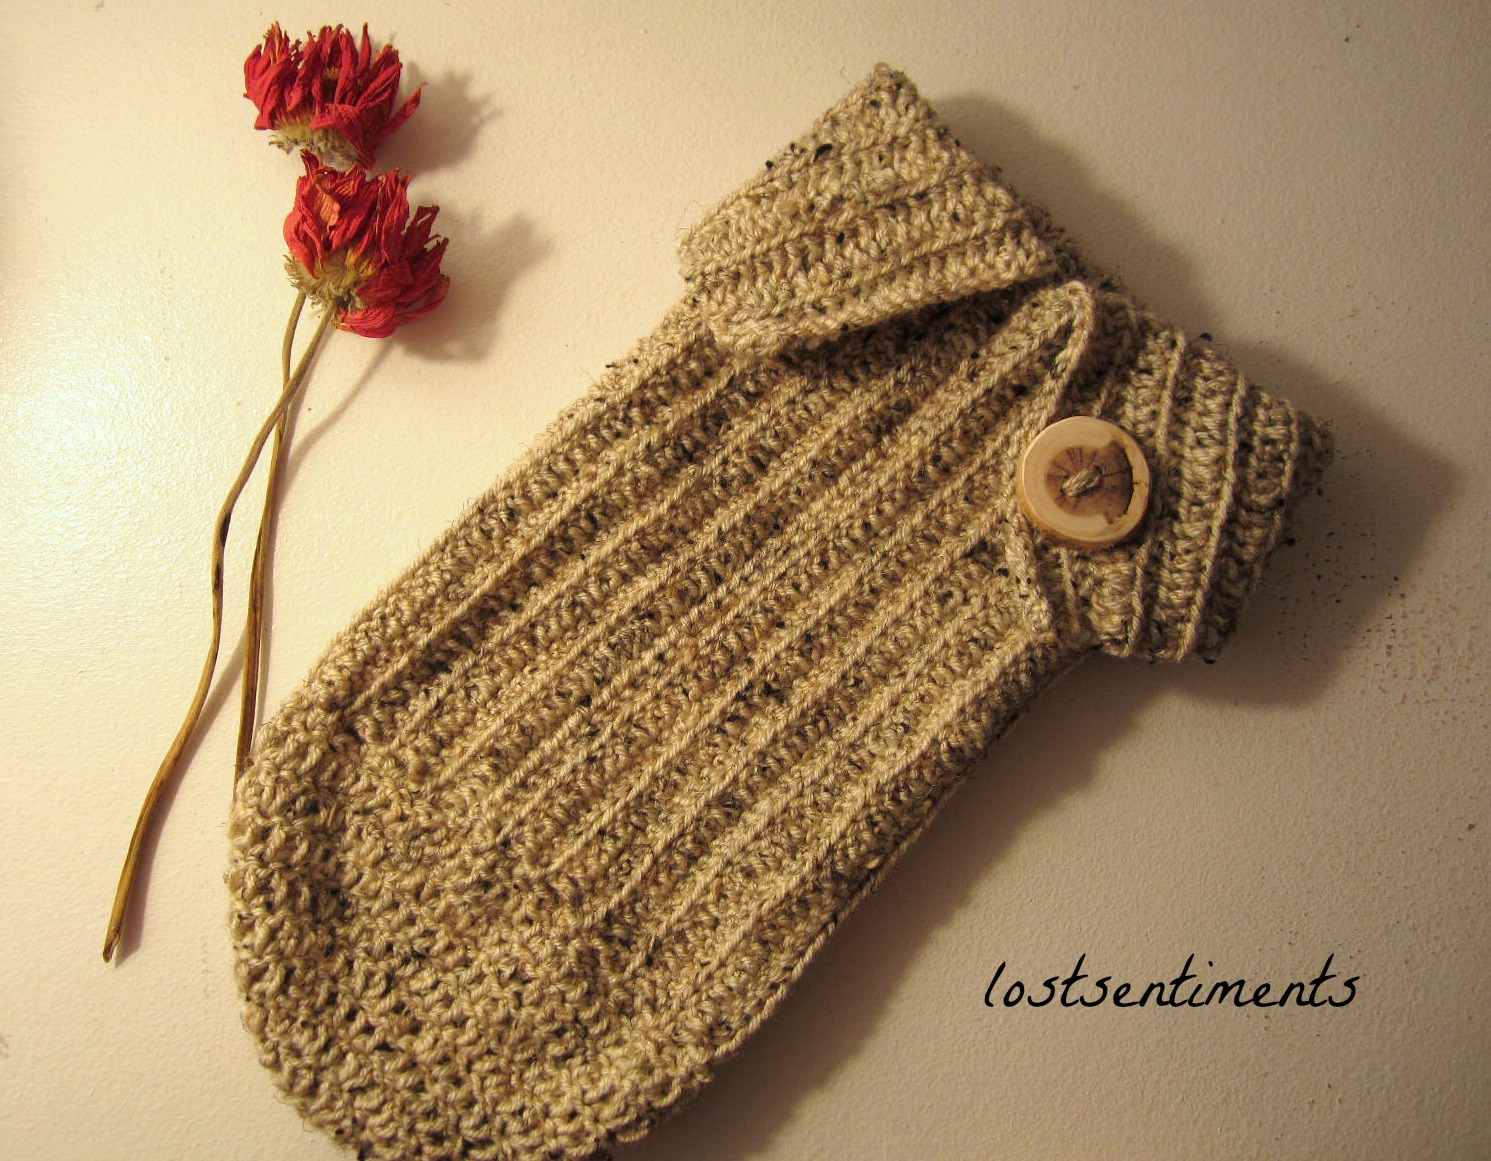 lostsentiments: Finished Crochet Baby Cocoon